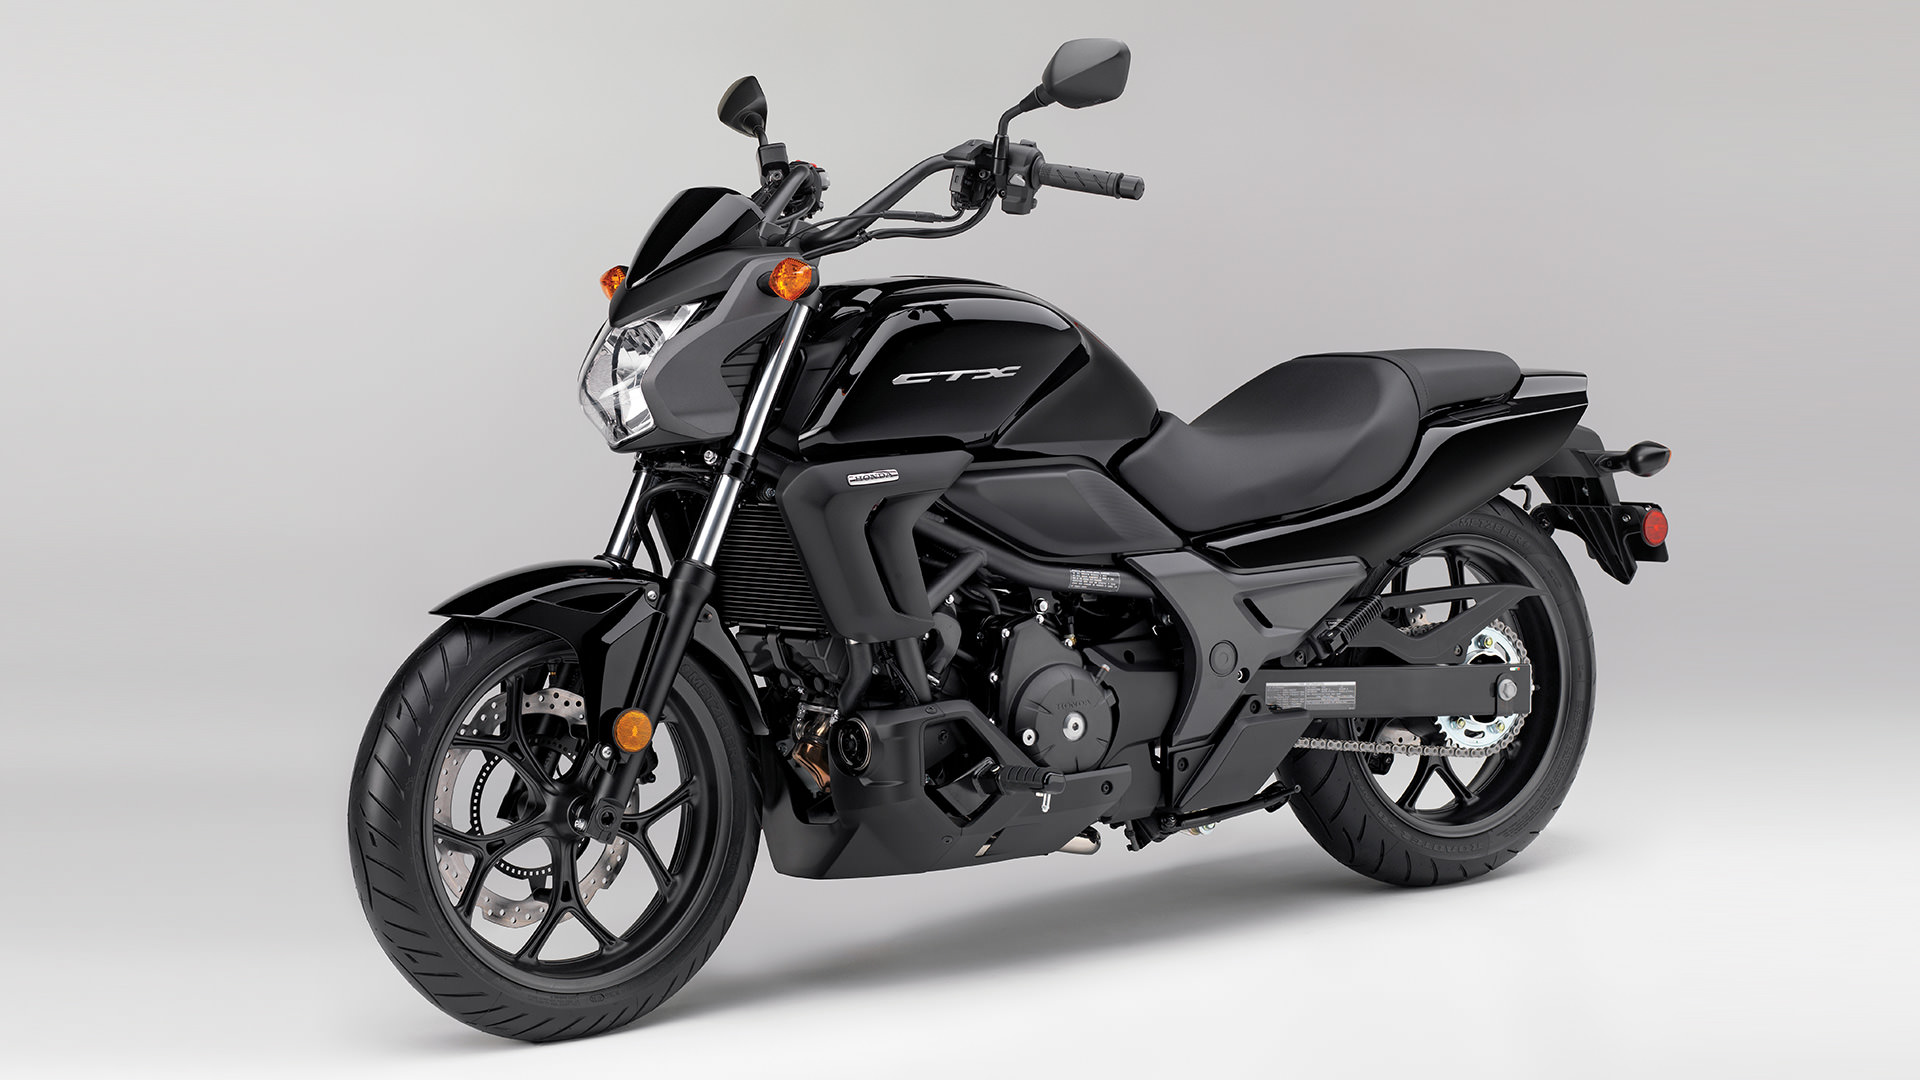 2016 honda ctx700n dct review specs pictures videos. Black Bedroom Furniture Sets. Home Design Ideas